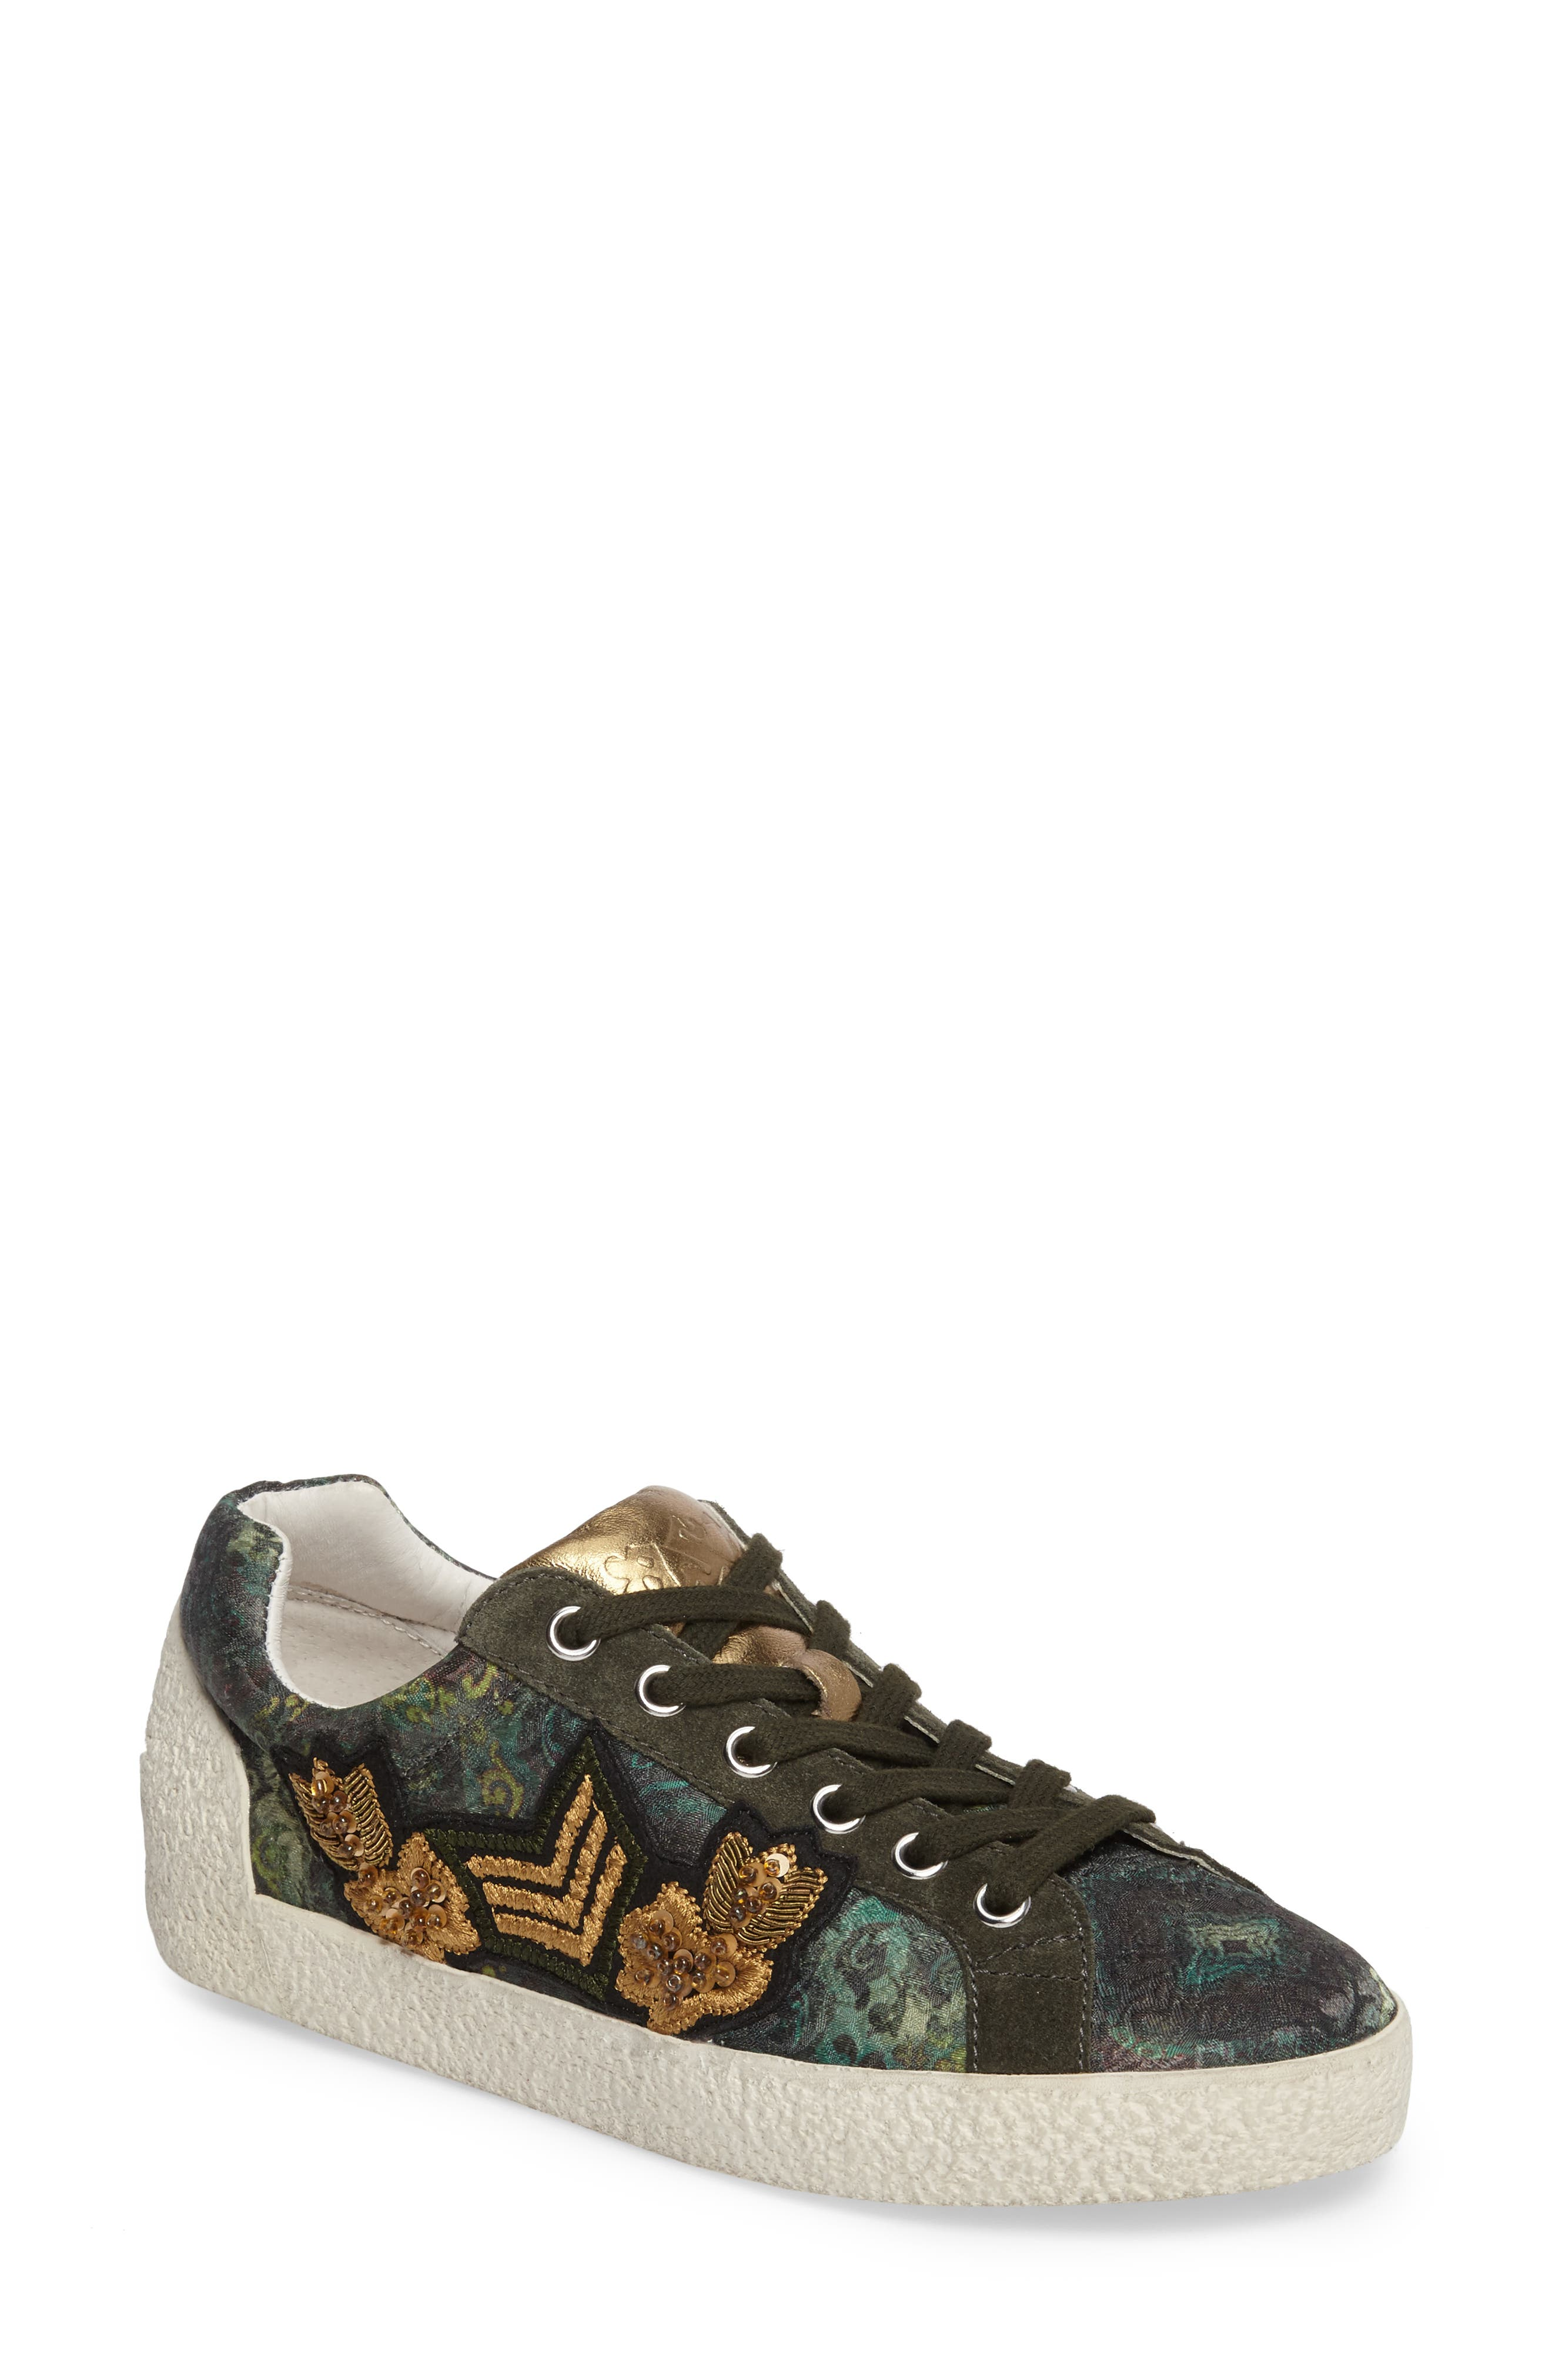 Embellished Low-Top Sneaker,                             Main thumbnail 1, color,                             312